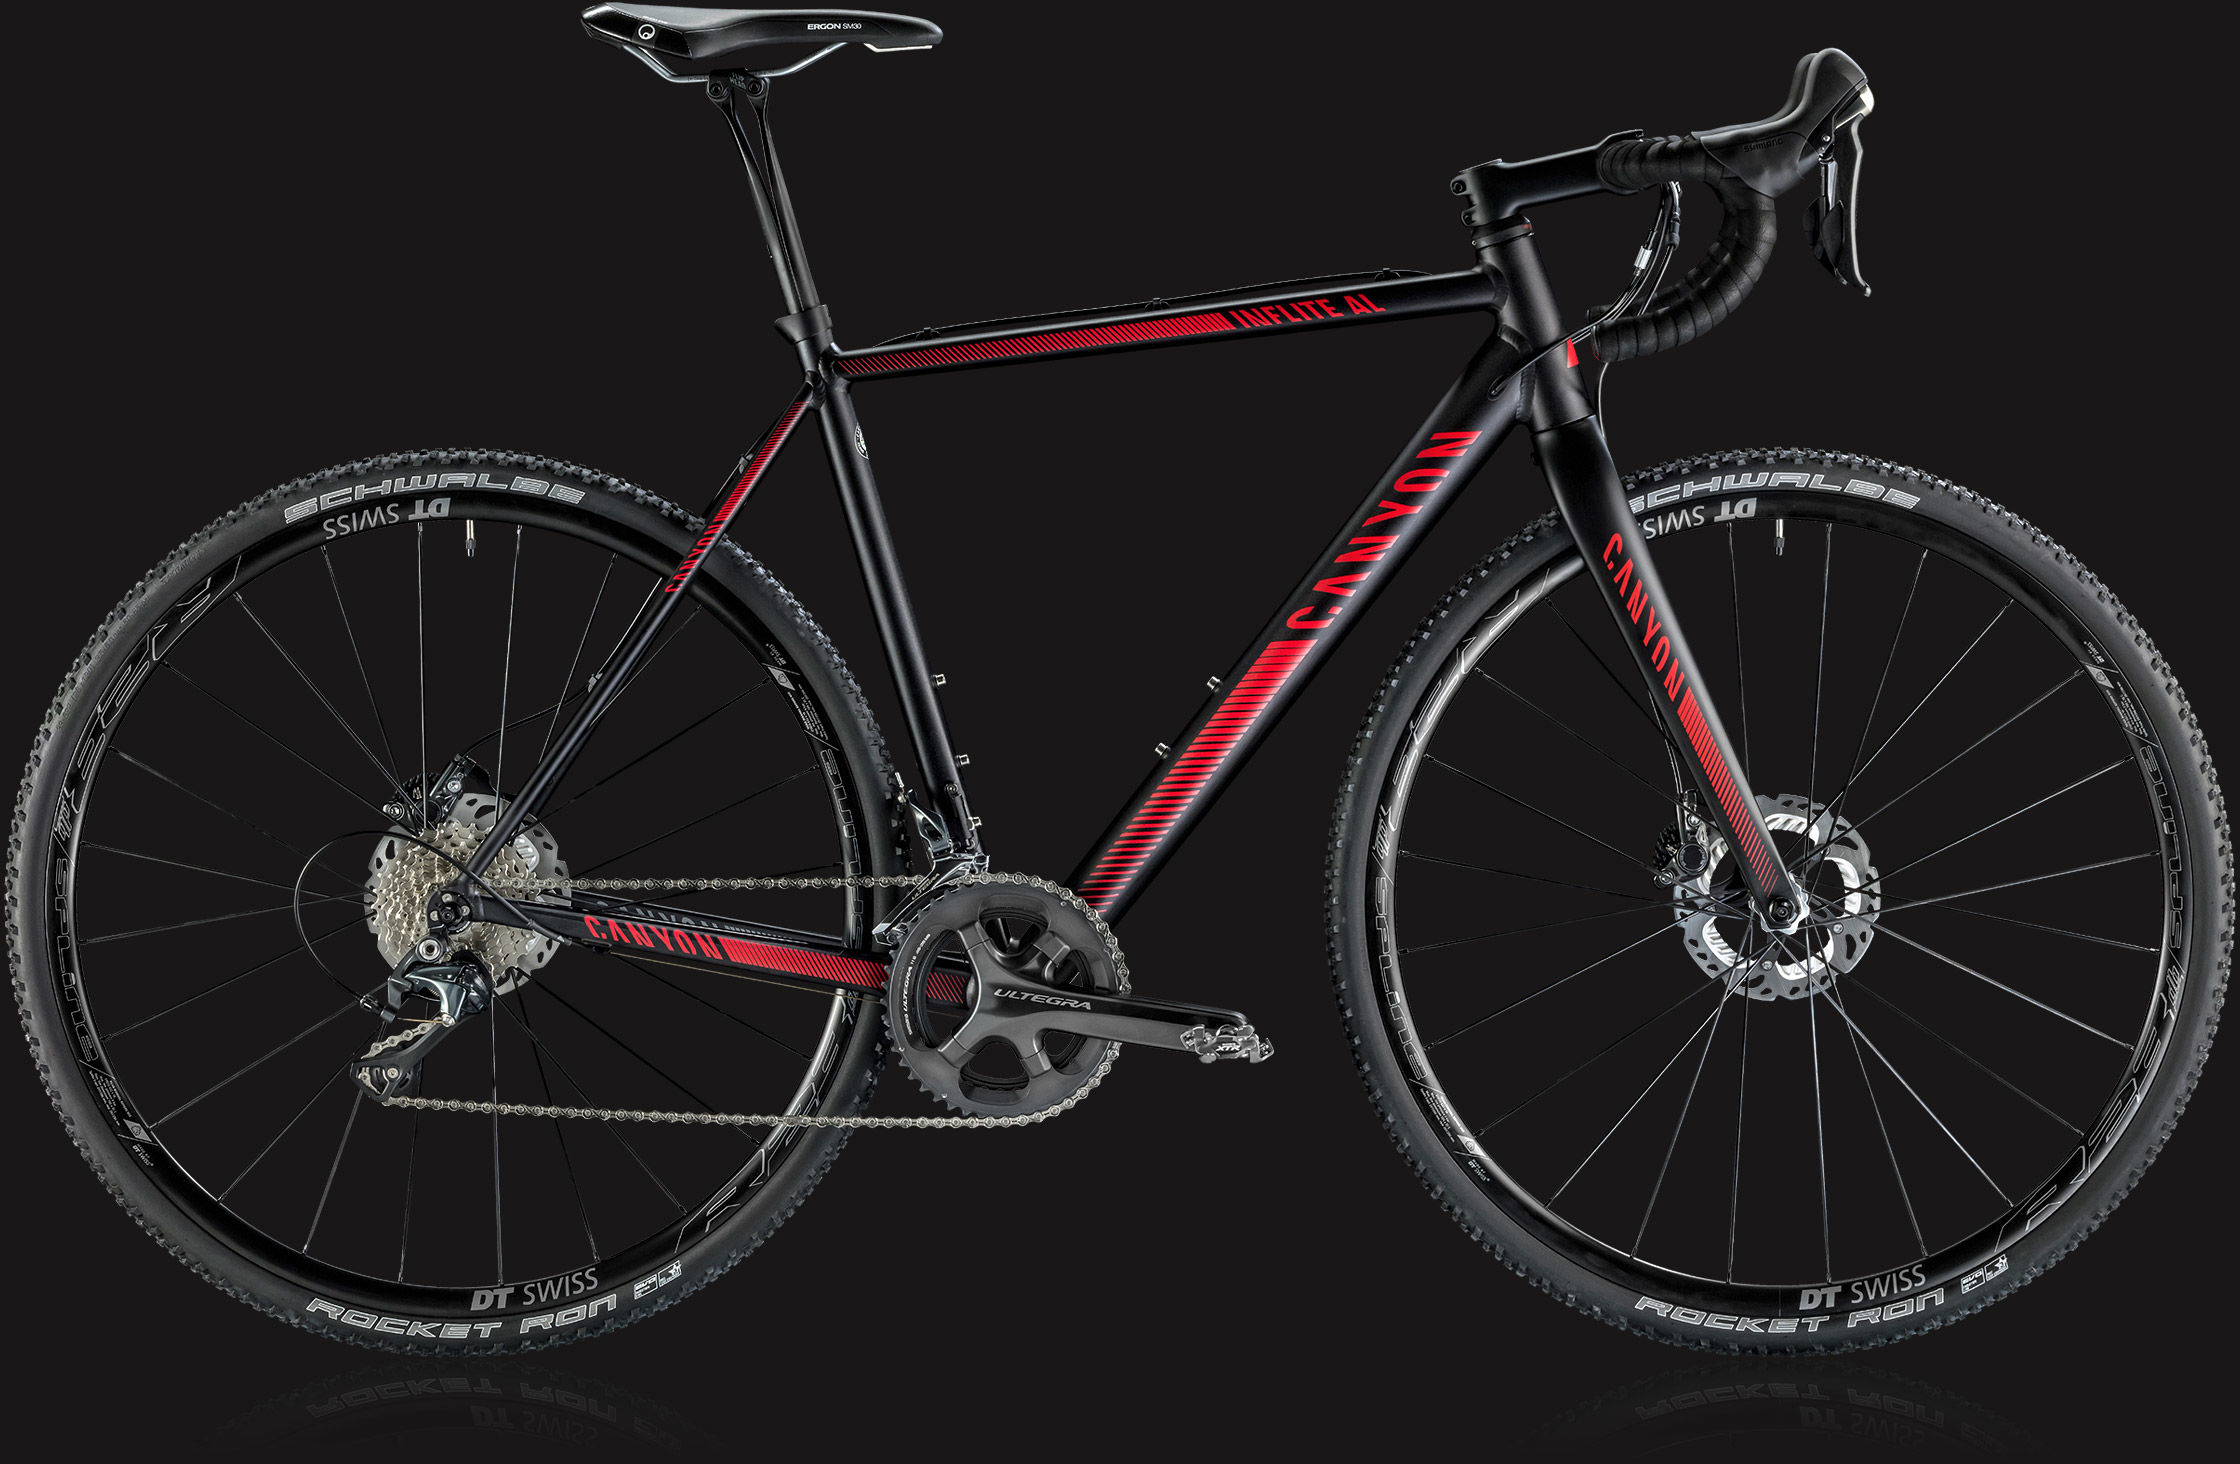 Canyon Inflite AL 9 0 2015 review - The Bike List